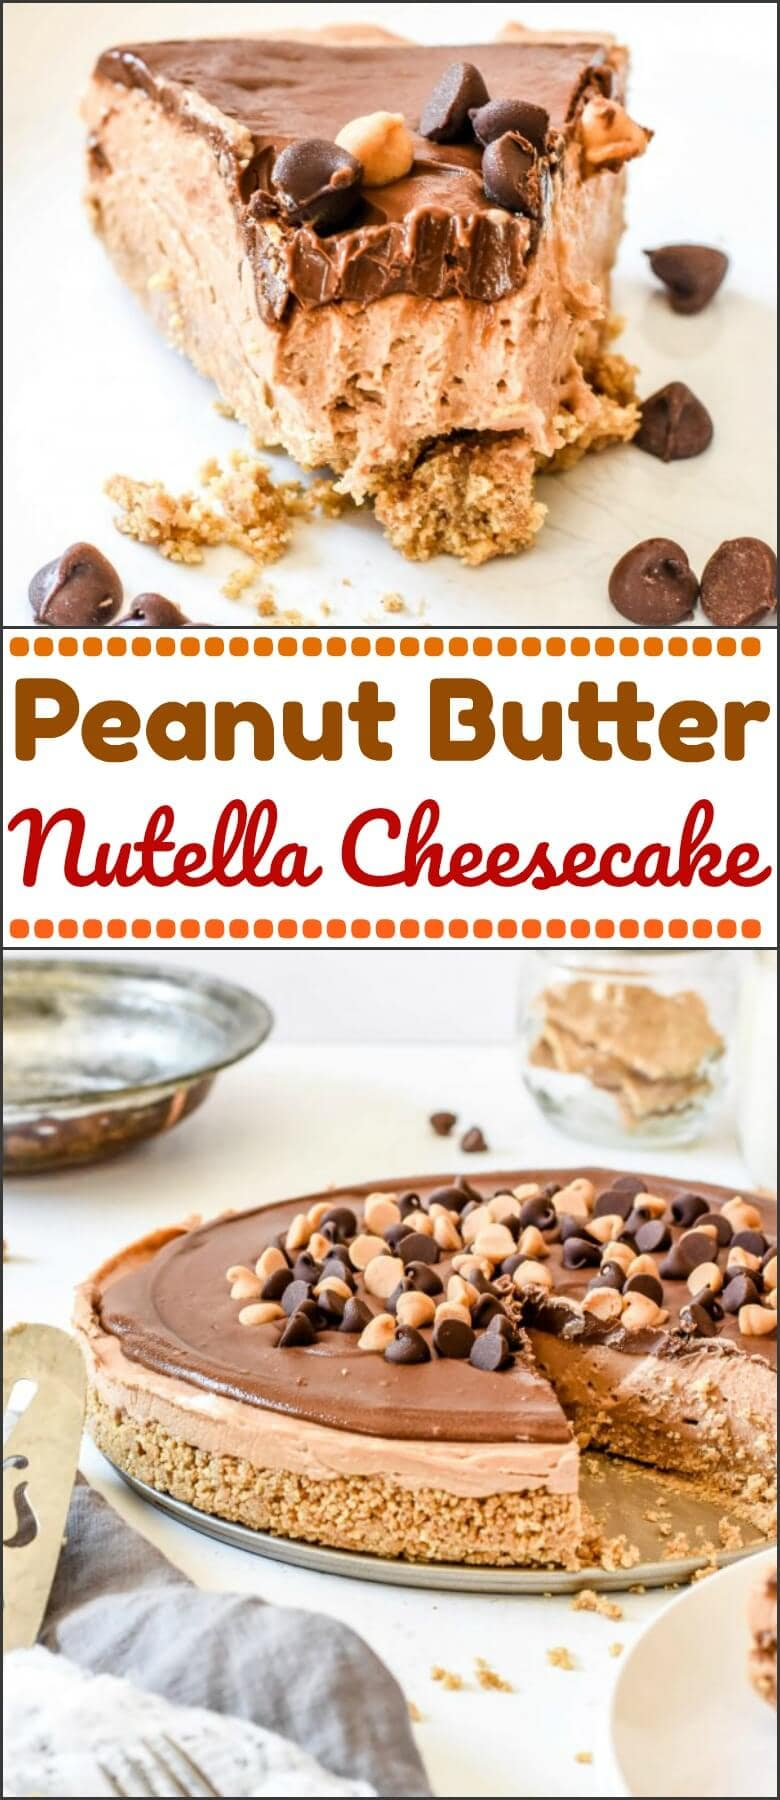 Easy No-Bake Peanut Butter Nutella Cheesecake is one of our favorite recipes for hosting friends and families and the perfect dessert for a BBQ!